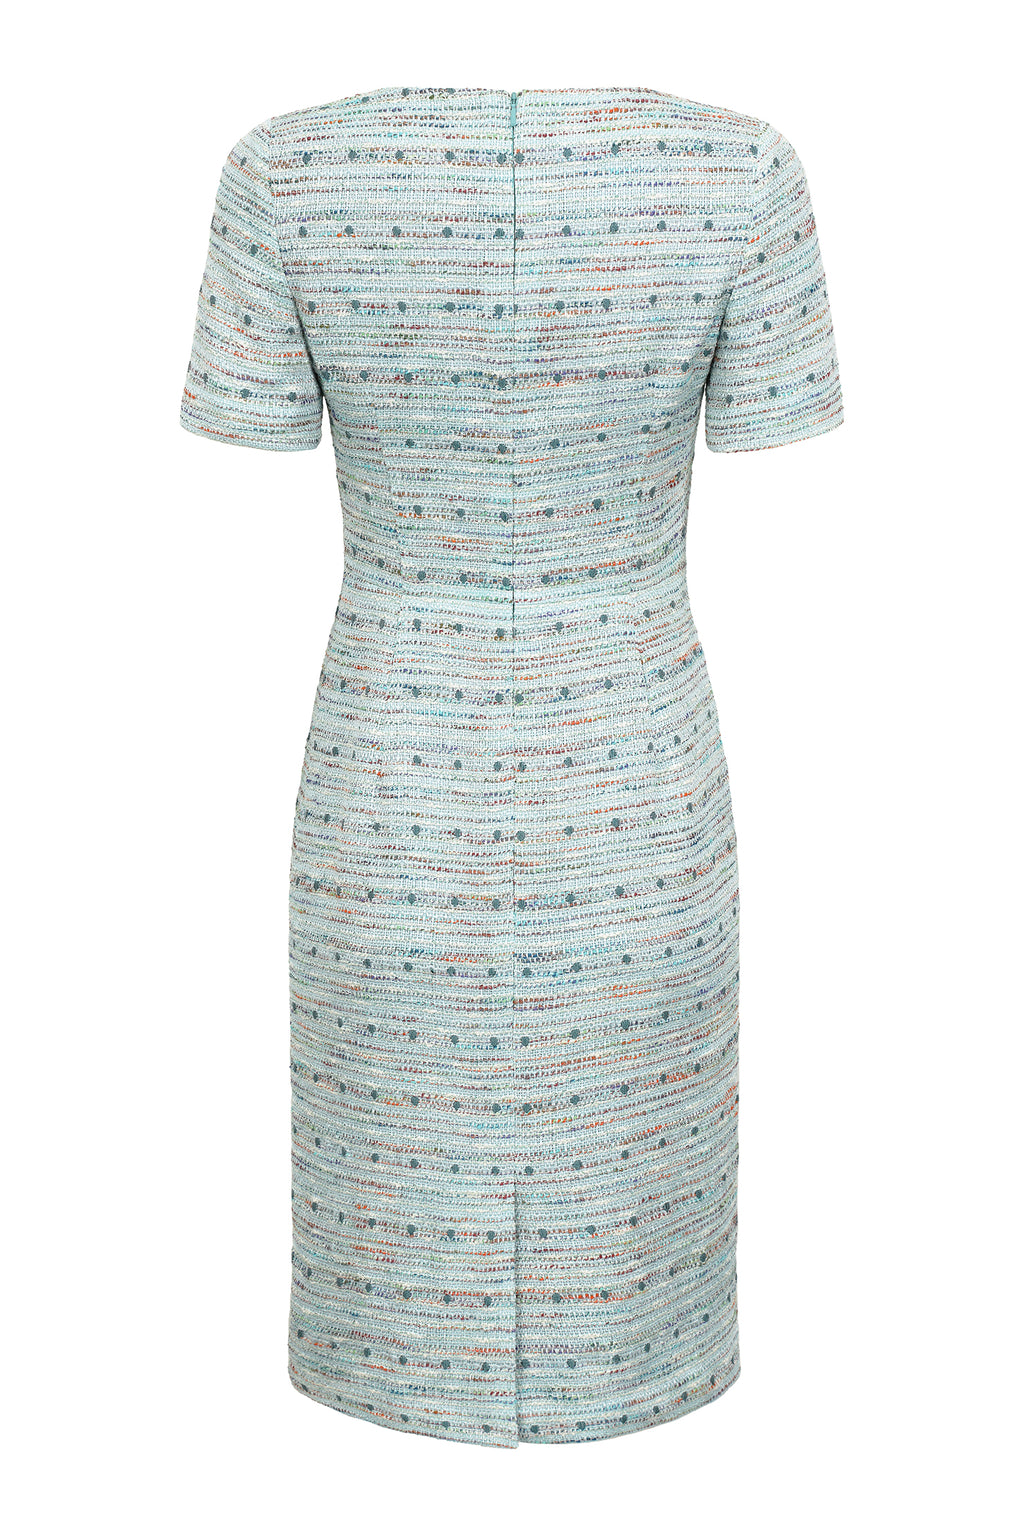 Light-weight French Tweed Dress in Aqua and Sea Green - Angie